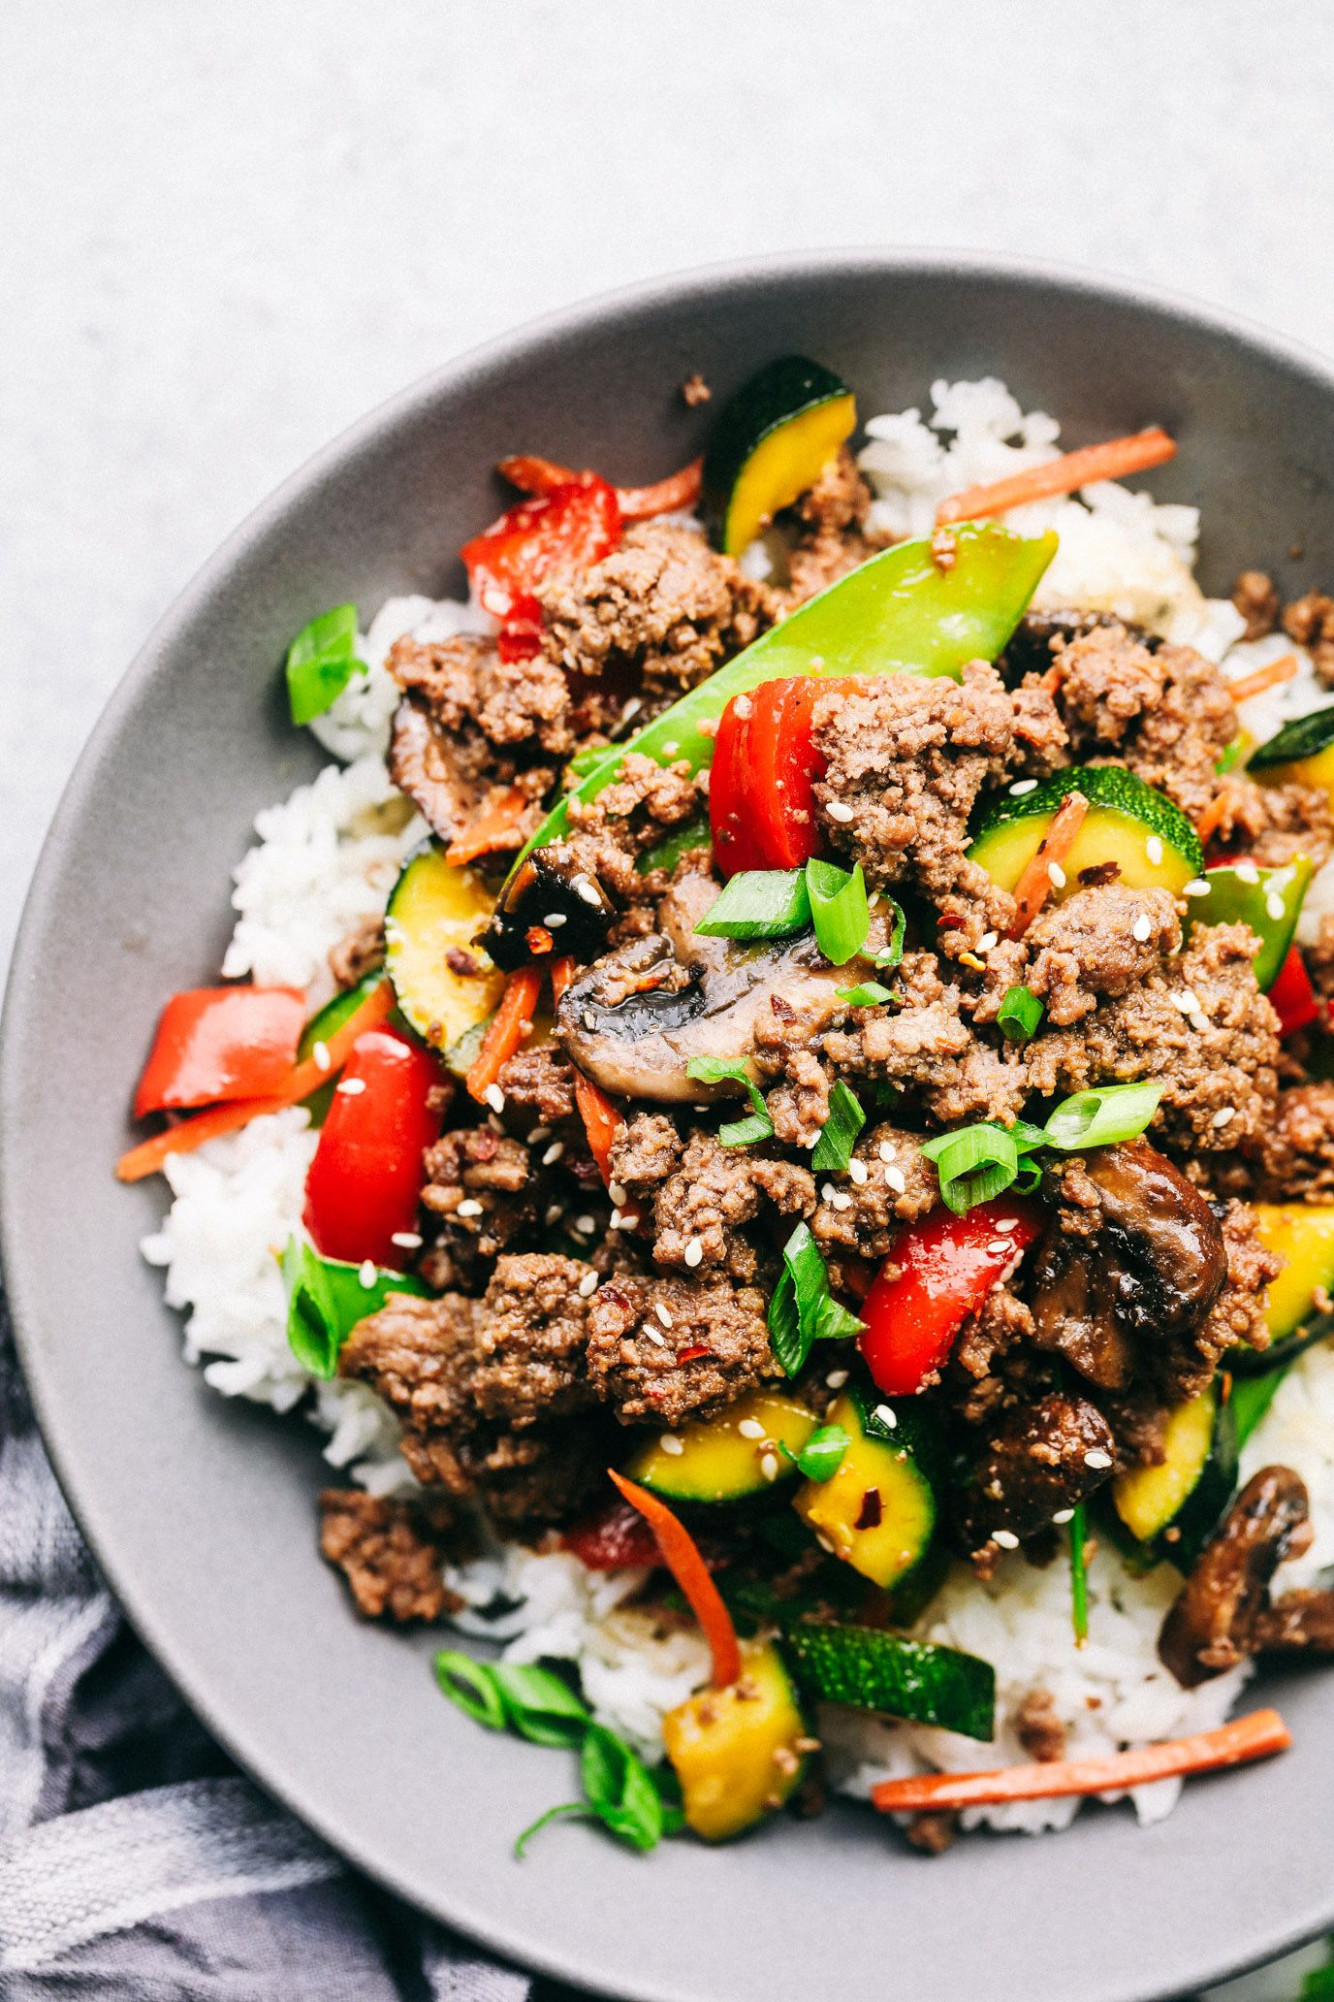 14 Easy Ground Beef Recipes - Best Dinner Ideas With Ground Beef - recipes dinner ground beef